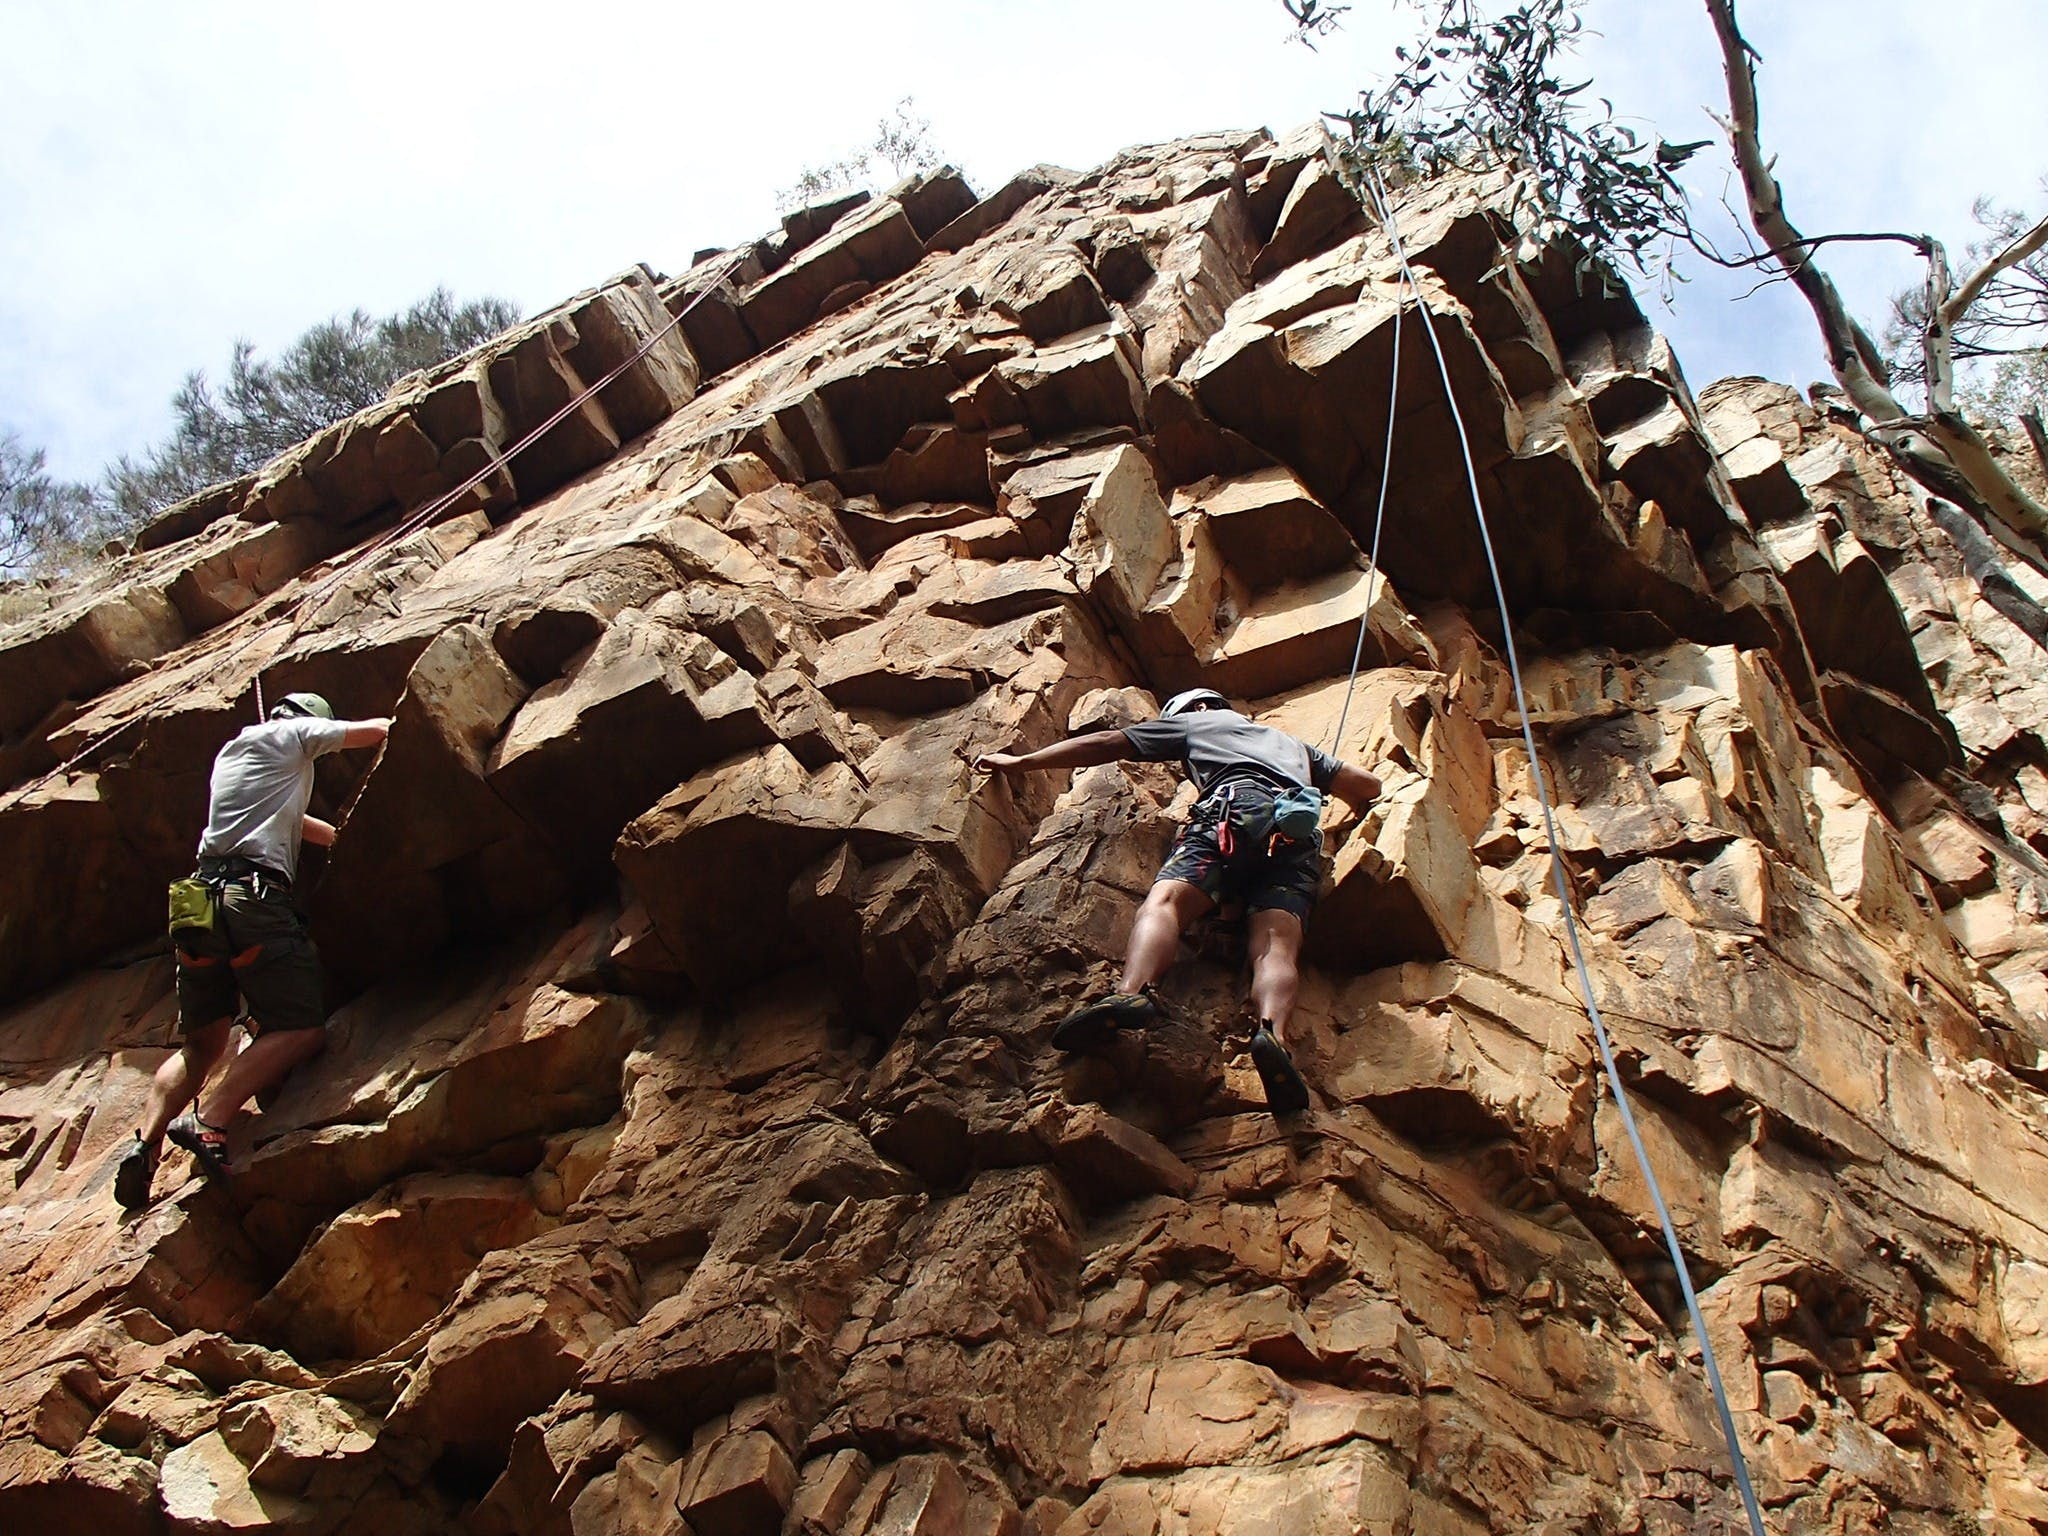 Rock Climbing in Morialta - Tourism Gold Coast